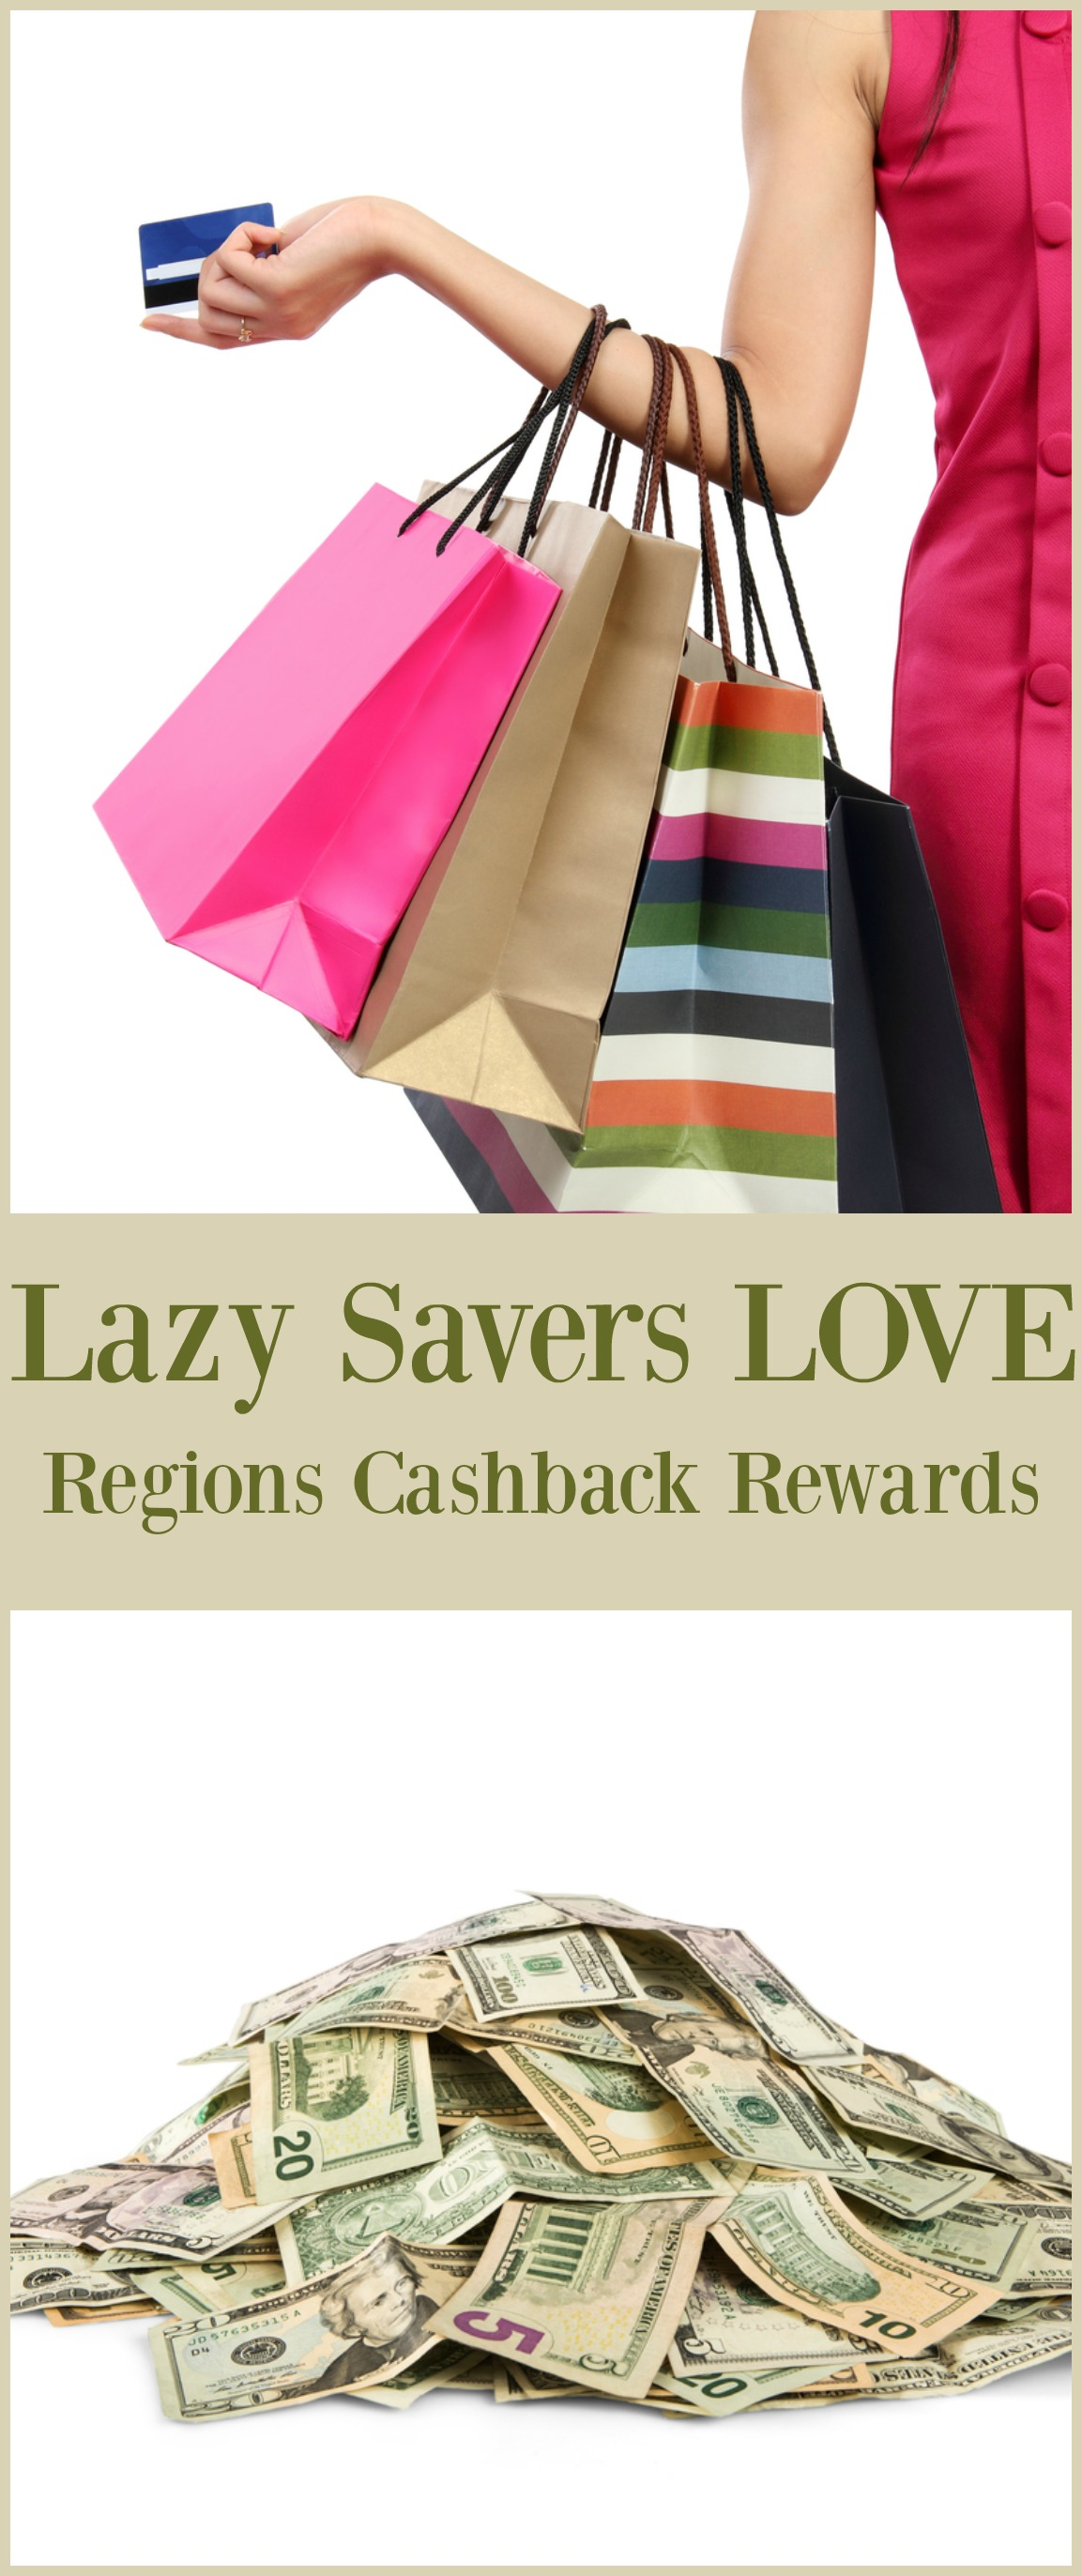 Lazy Savers Love Regions Cashback Rewards